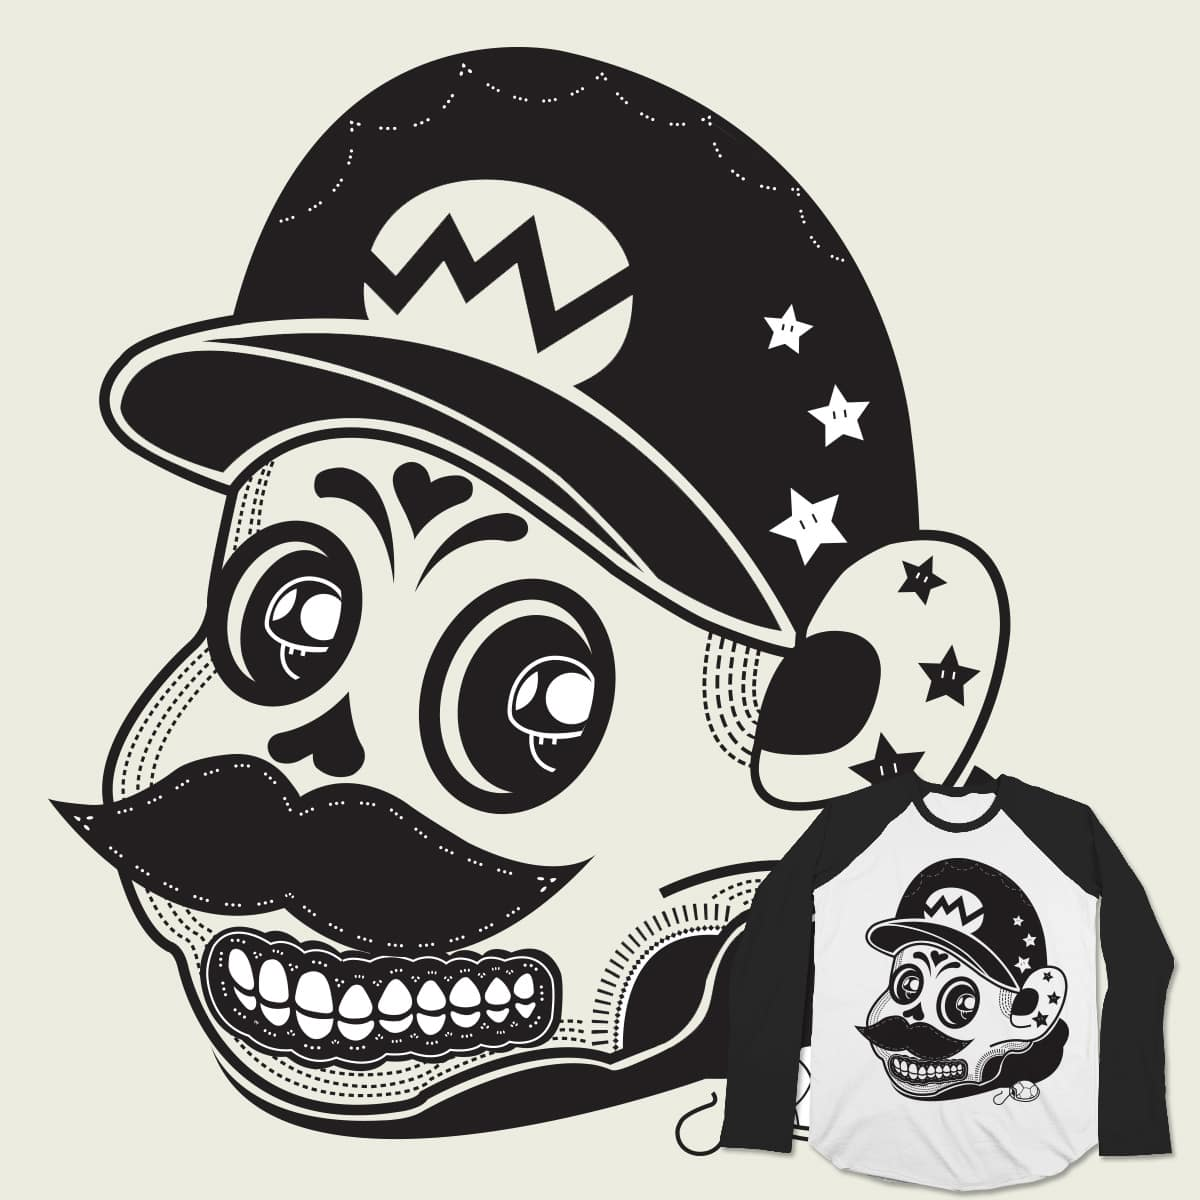 Mario sugar skull by Nix19 on Threadless